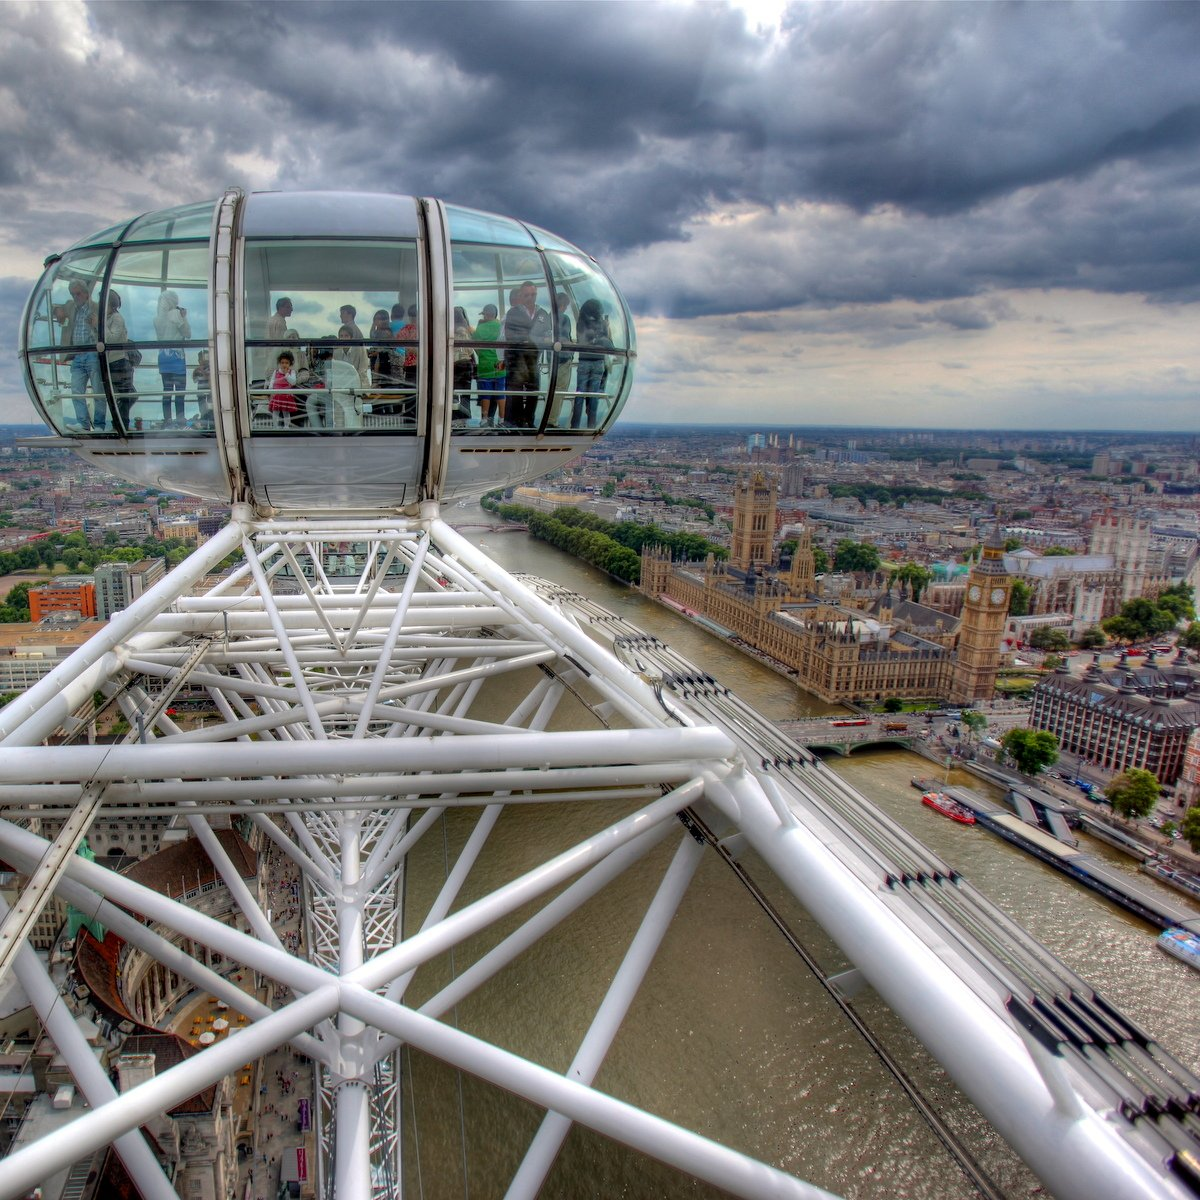 15 Things You Probably Didn't Know About the London Eye https://t.co/WZyCc6DsTy #travel #ttot https://t.co/nMCOKYib1v via @mappingmegan